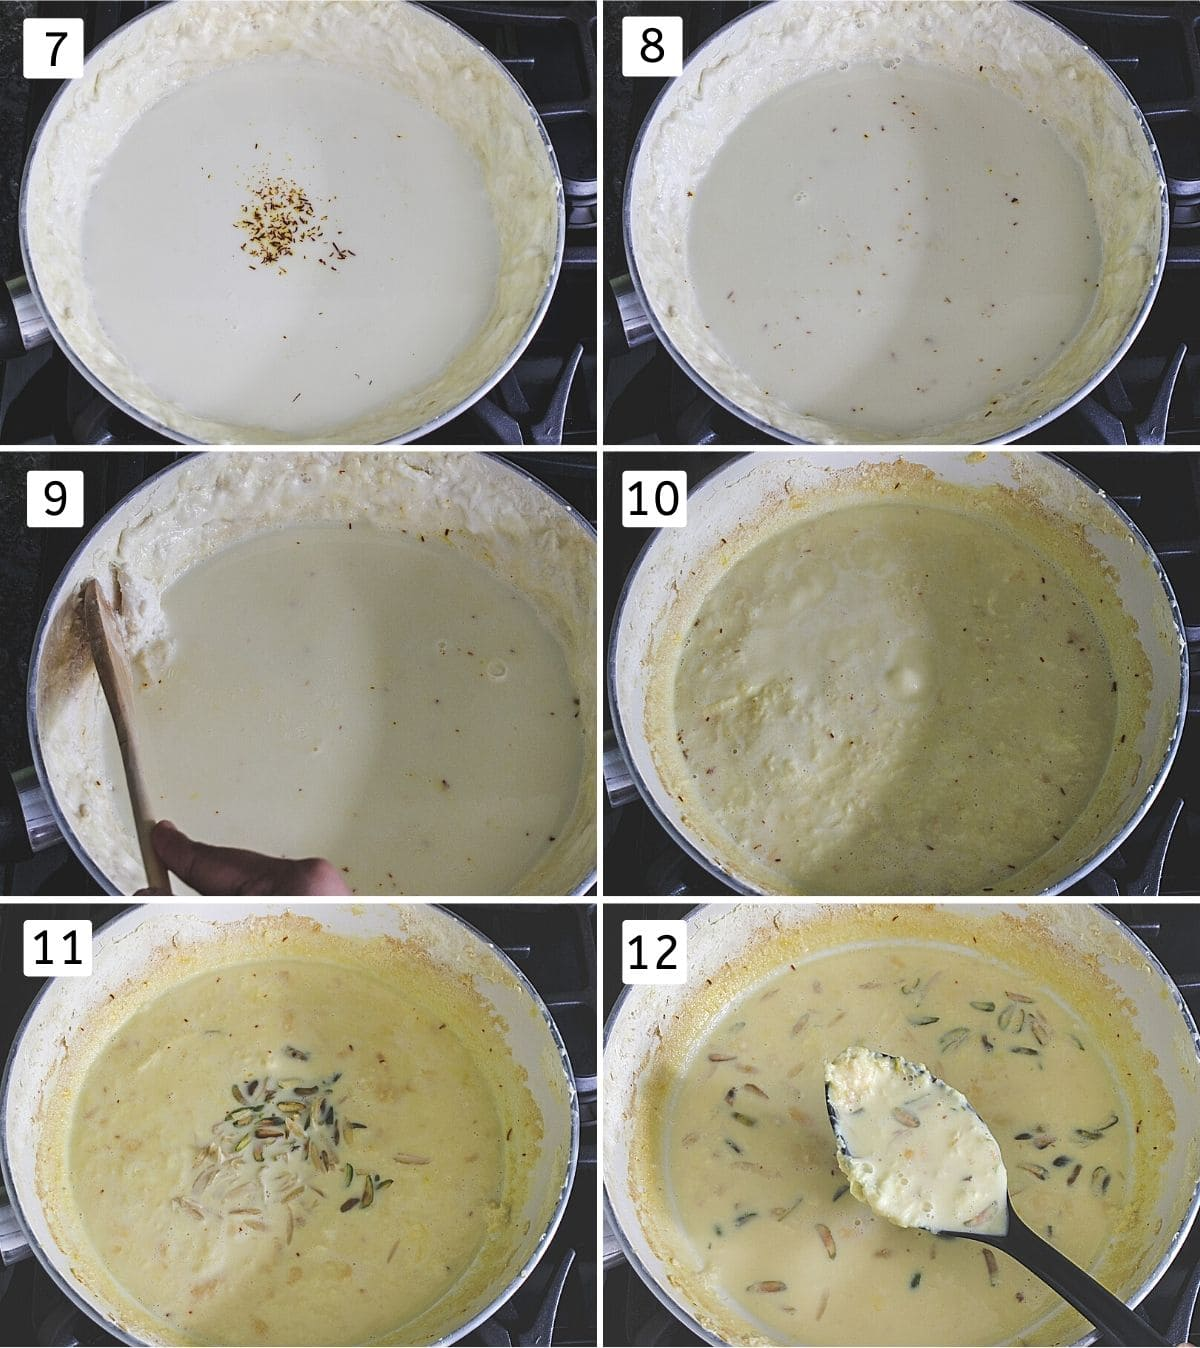 Collage of 6 steps showing adding sugar, saffron, simmering, scraping the sides, adding to the milk, adding nuts and spoonful of rabri